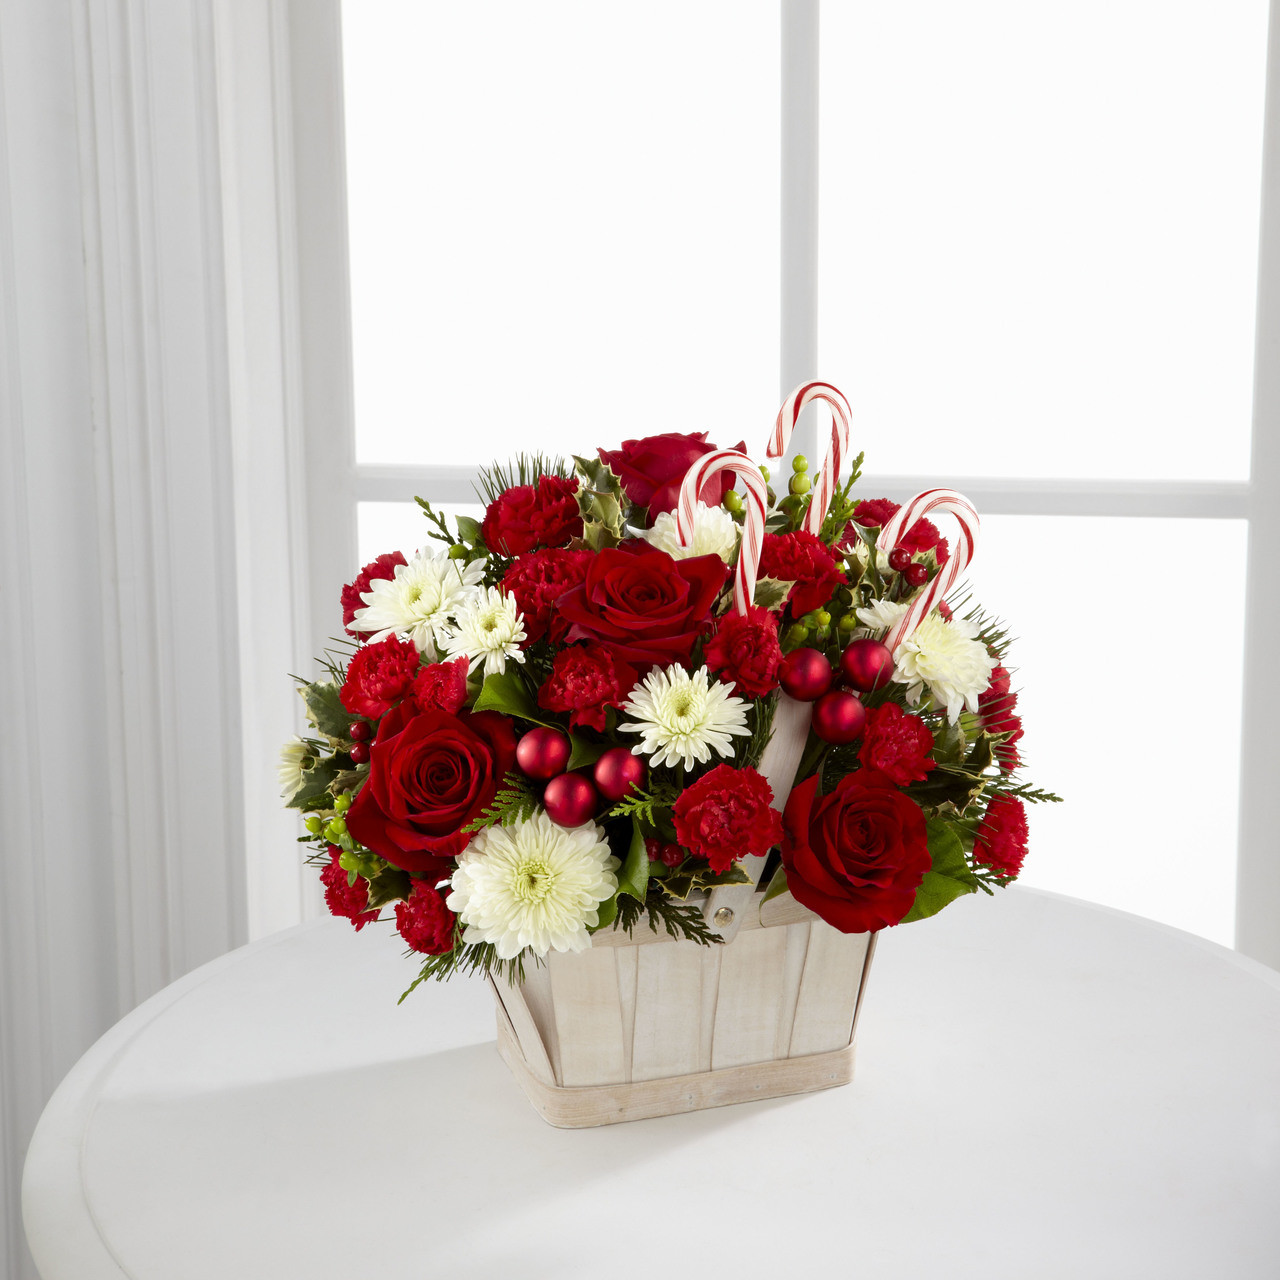 Candy cane lane bouquet long island flower delivery izmirmasajfo